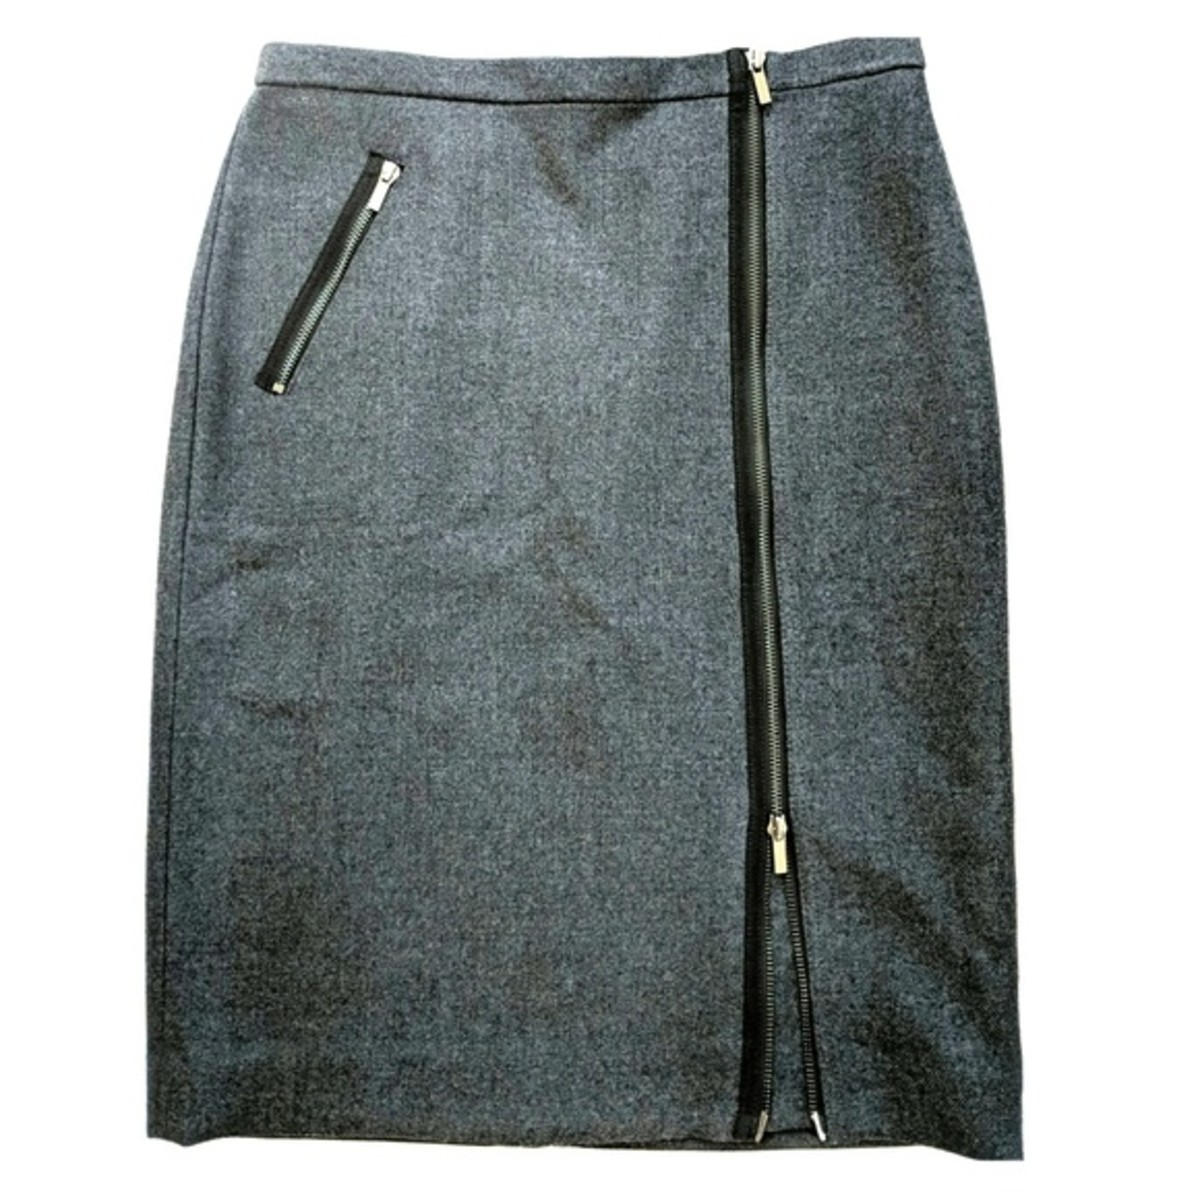 pennys-posh-picks-of-the-week-dont-skirt-this-issue-august-12